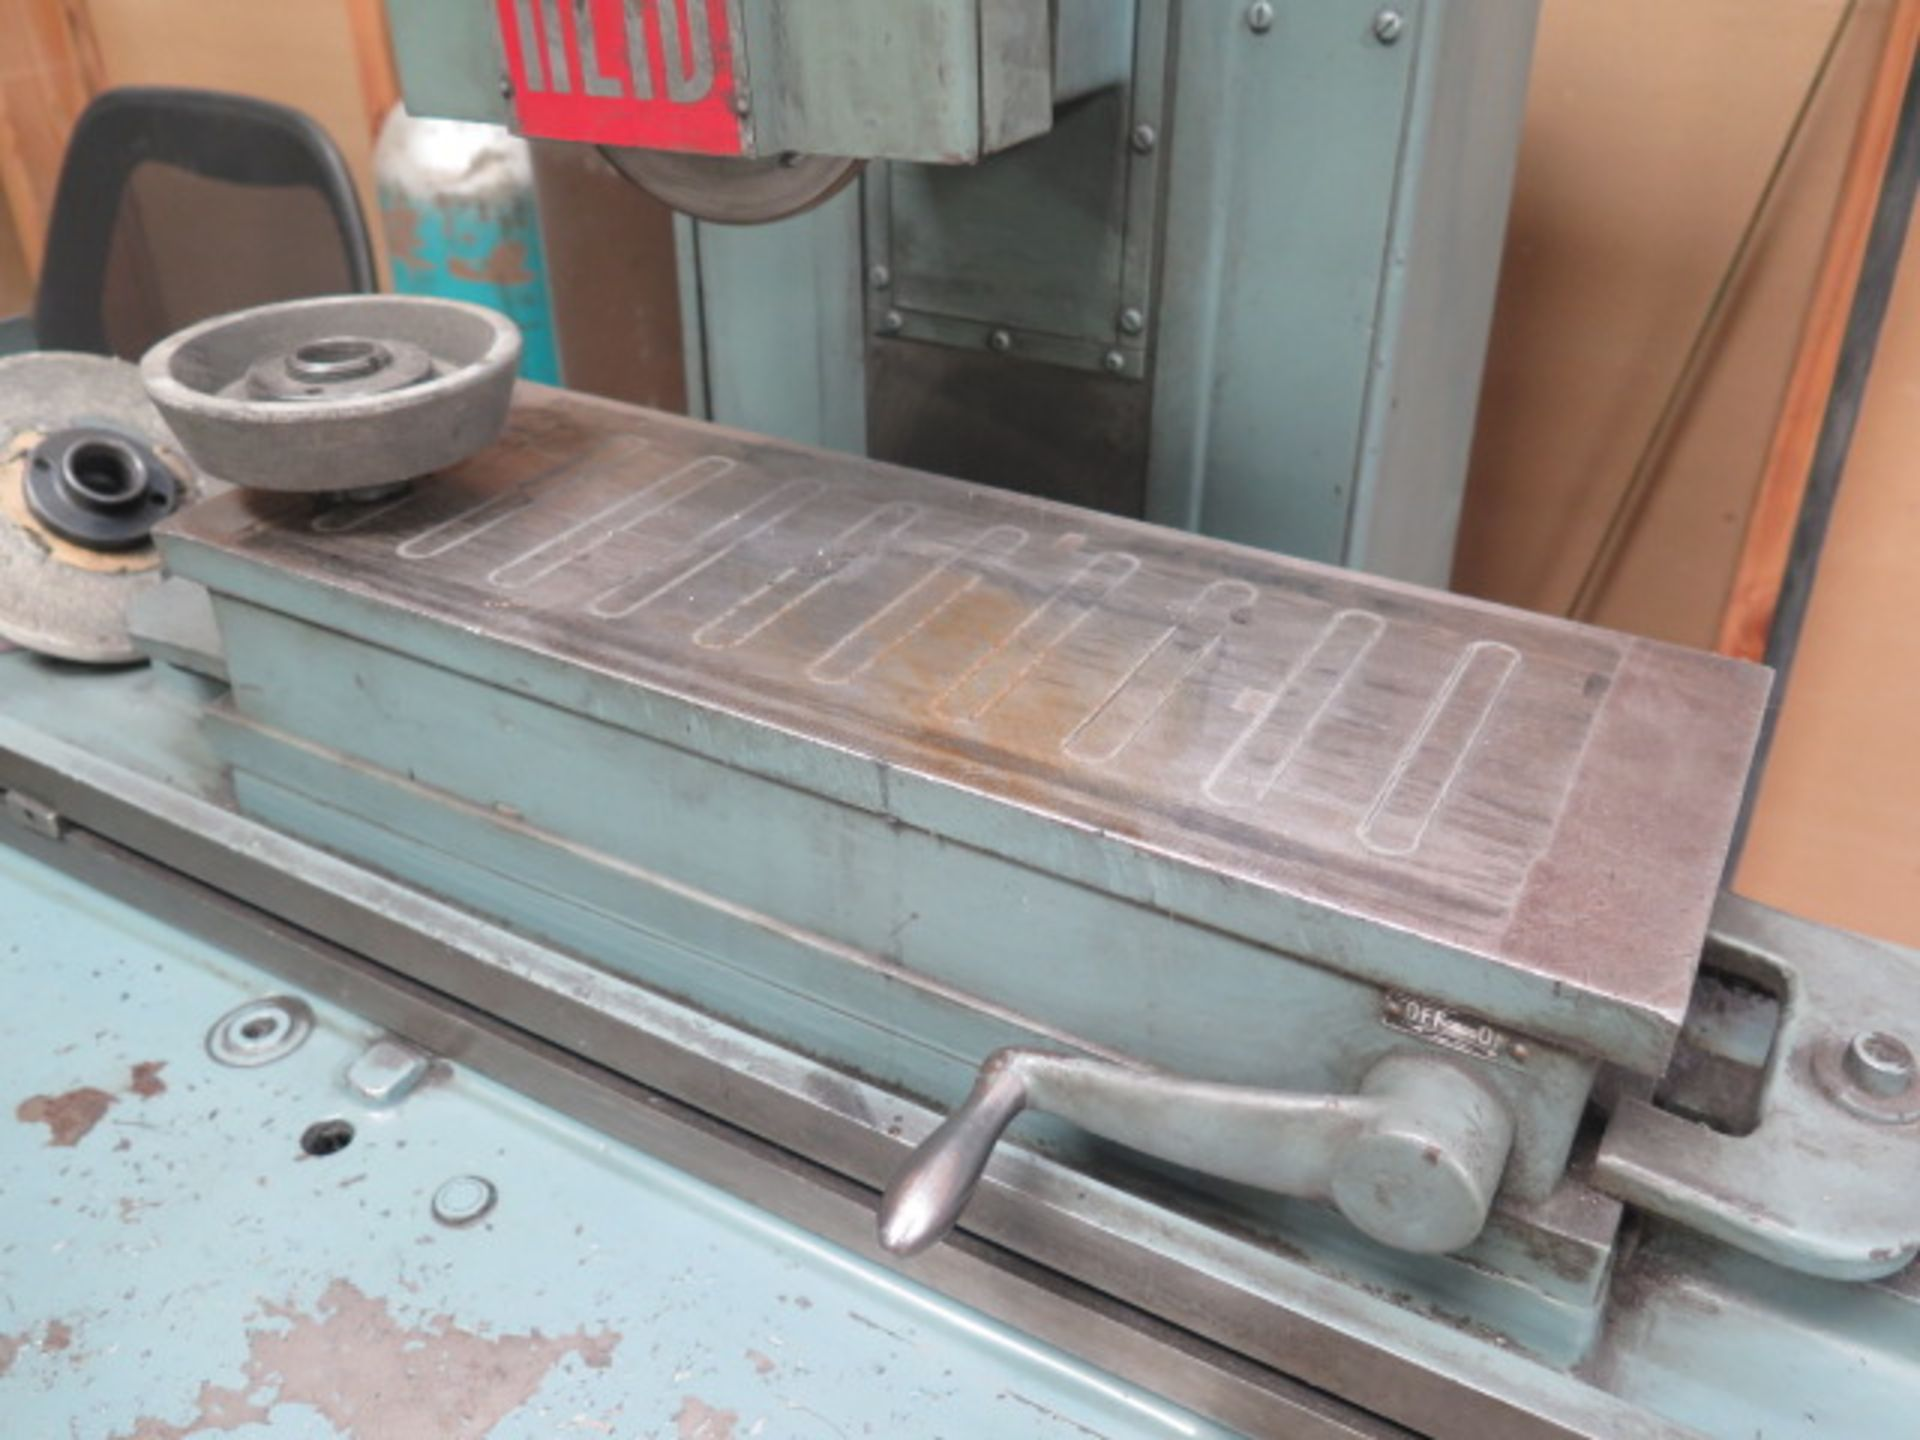 """Reid 618HA 6"""" x 18"""" Surface Grinder s/n 14554 w/ Magnetic Chuck (SOLD AS-IS - NO WARRANTY) - Image 6 of 9"""